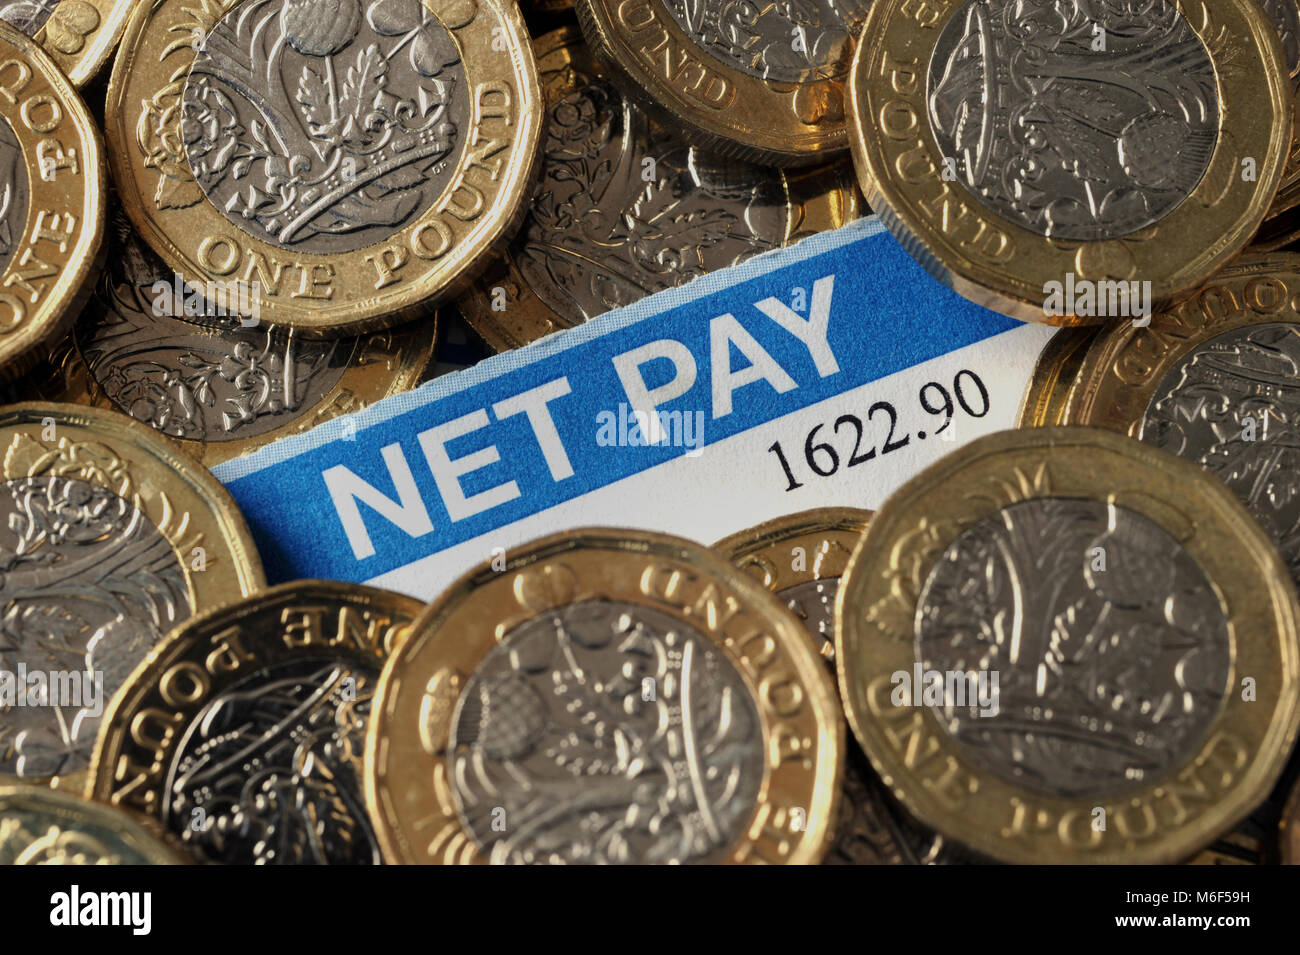 BRITISH PAYSLIP WITH NEW ONE POUND COINS RE INCOME WAGES NET PAY MINIMUM WAGE LIVING WAGE WORKERS ETC UK - Stock Image